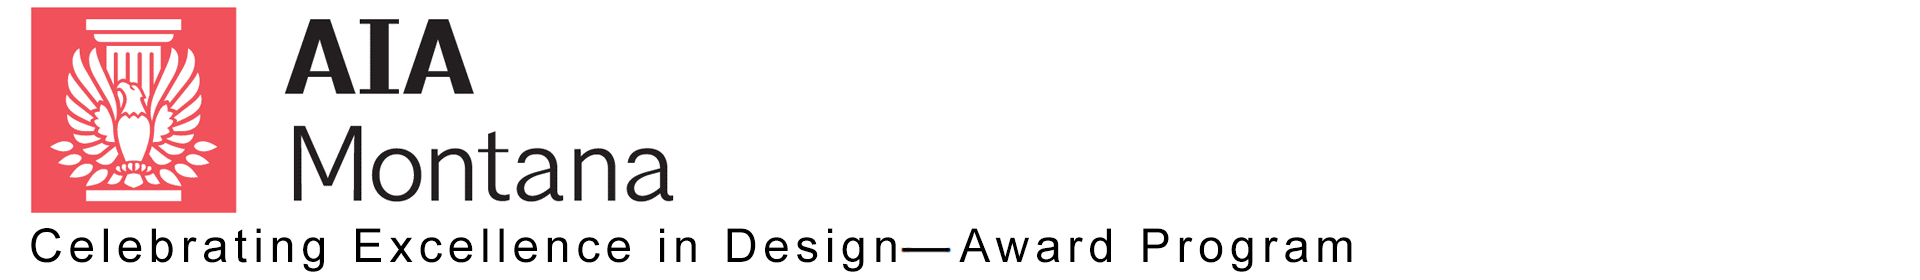 AIA Montana 2019 Design Awards Event Banner